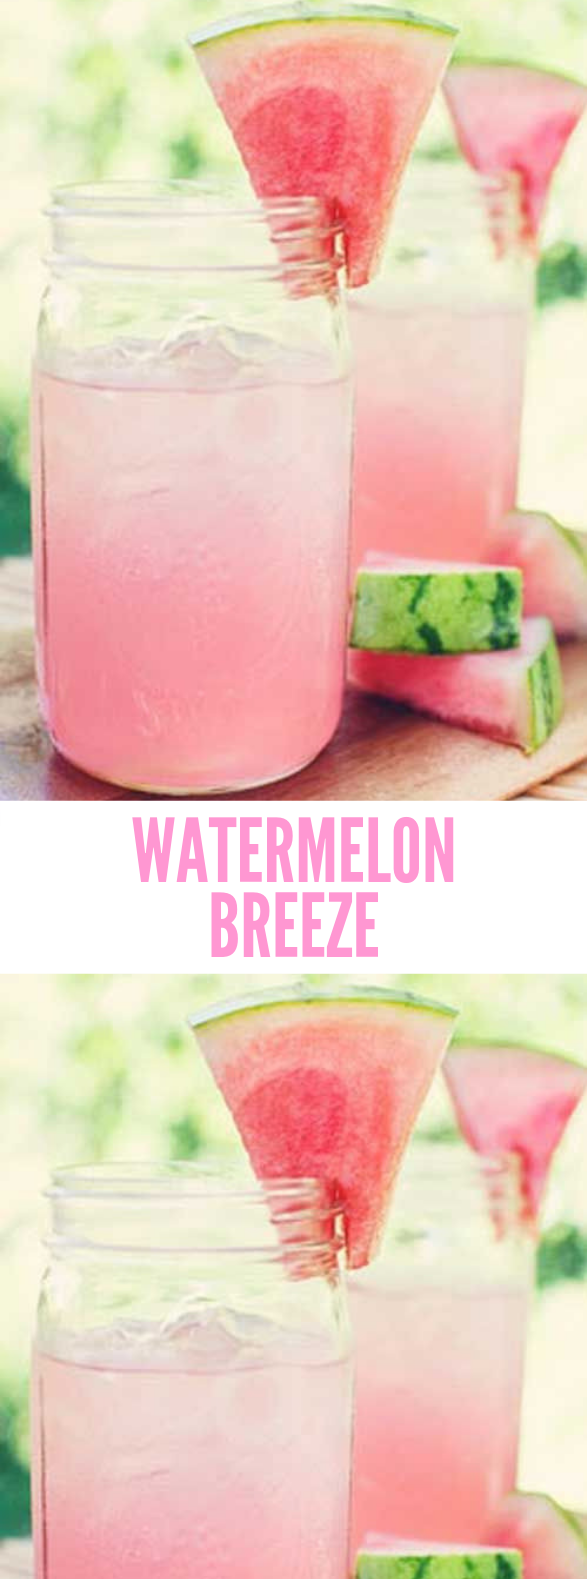 Watermelon Breeze #Drink #Delicious